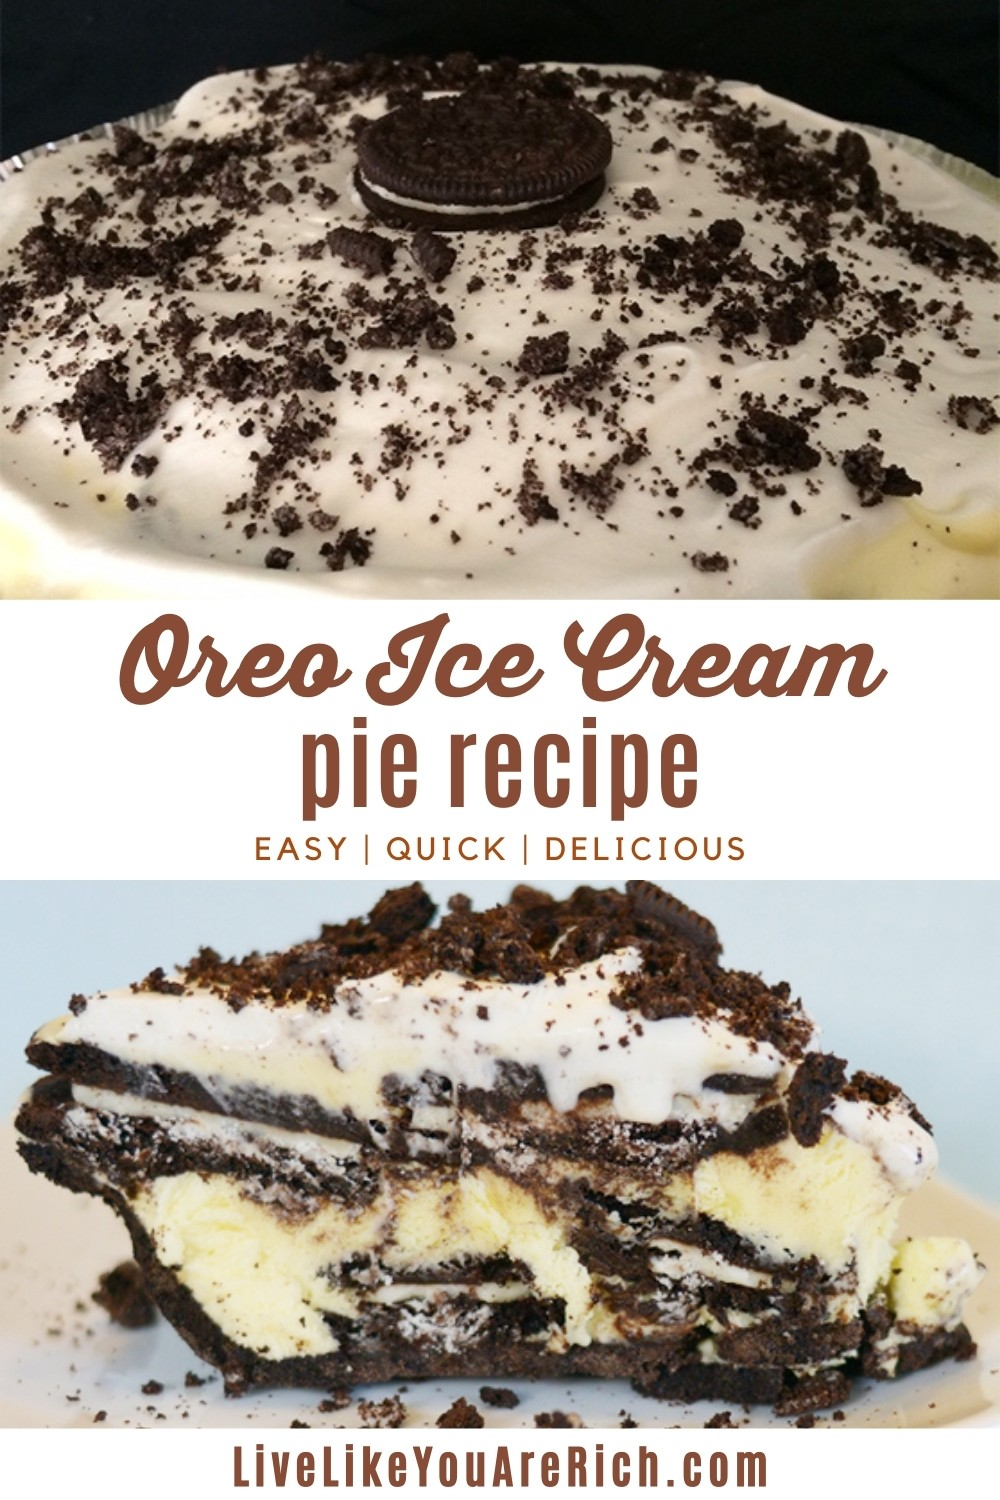 This super easy Oreo Ice Cream Pie recipe is so easy to make, quick, and absolutely delicious. It can be served very cold or frozen. I personally like it frozen because it is like an ice cream cake but instead it is an ice cream pie. #oreoicecream #pie